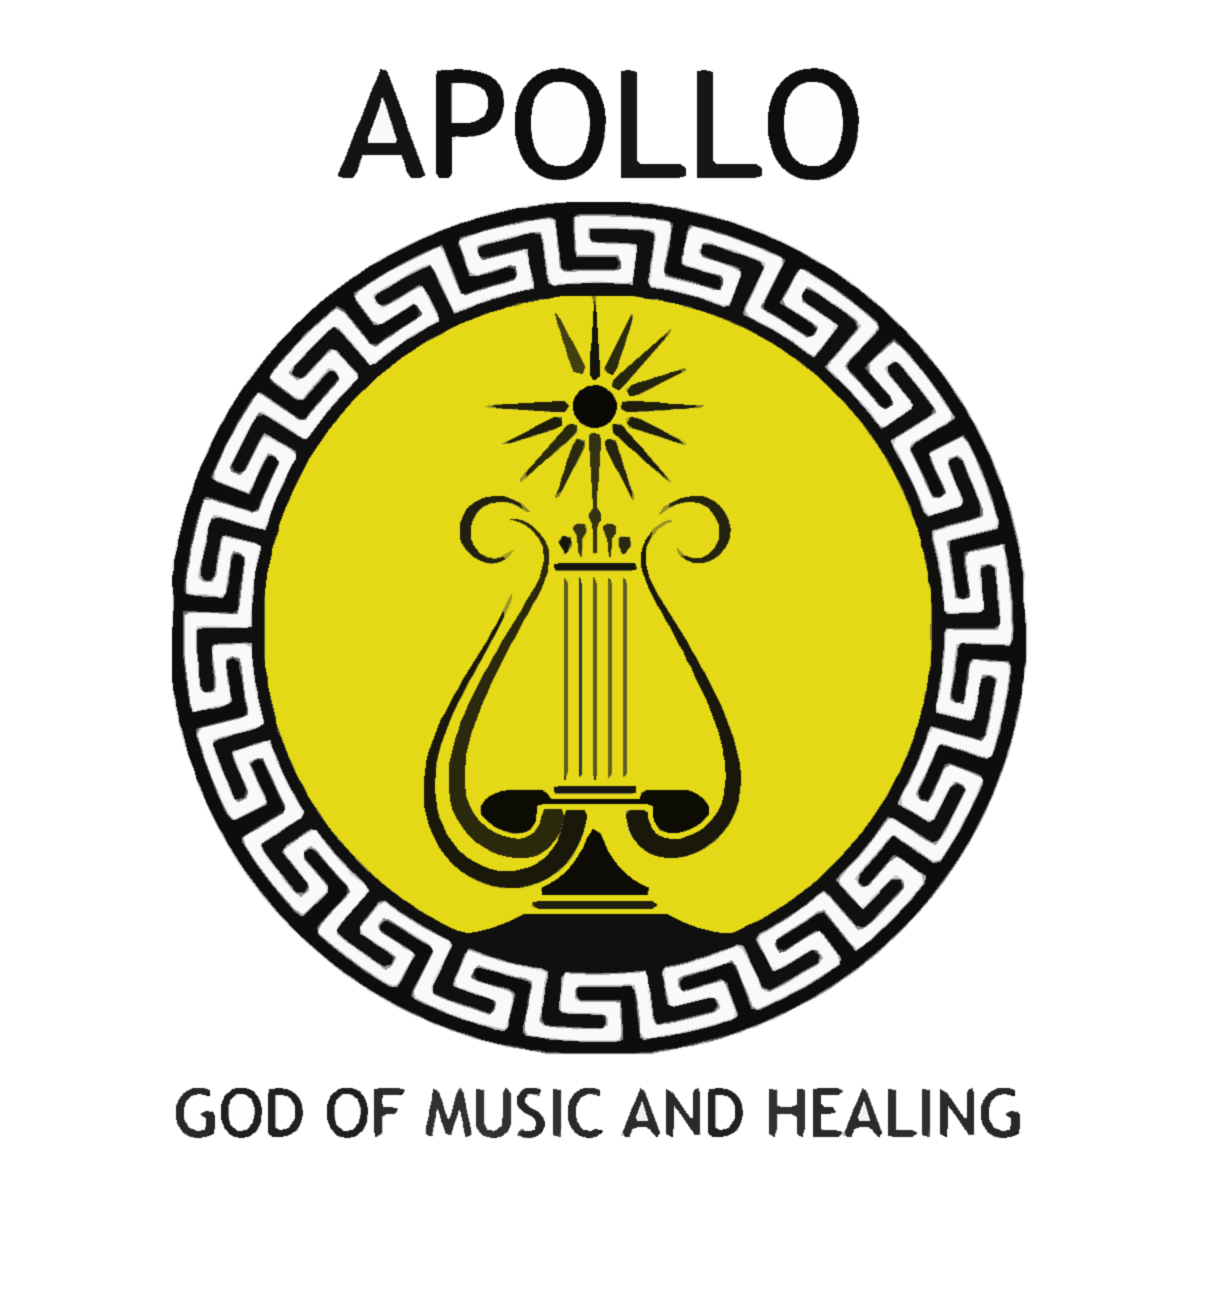 Apollo House